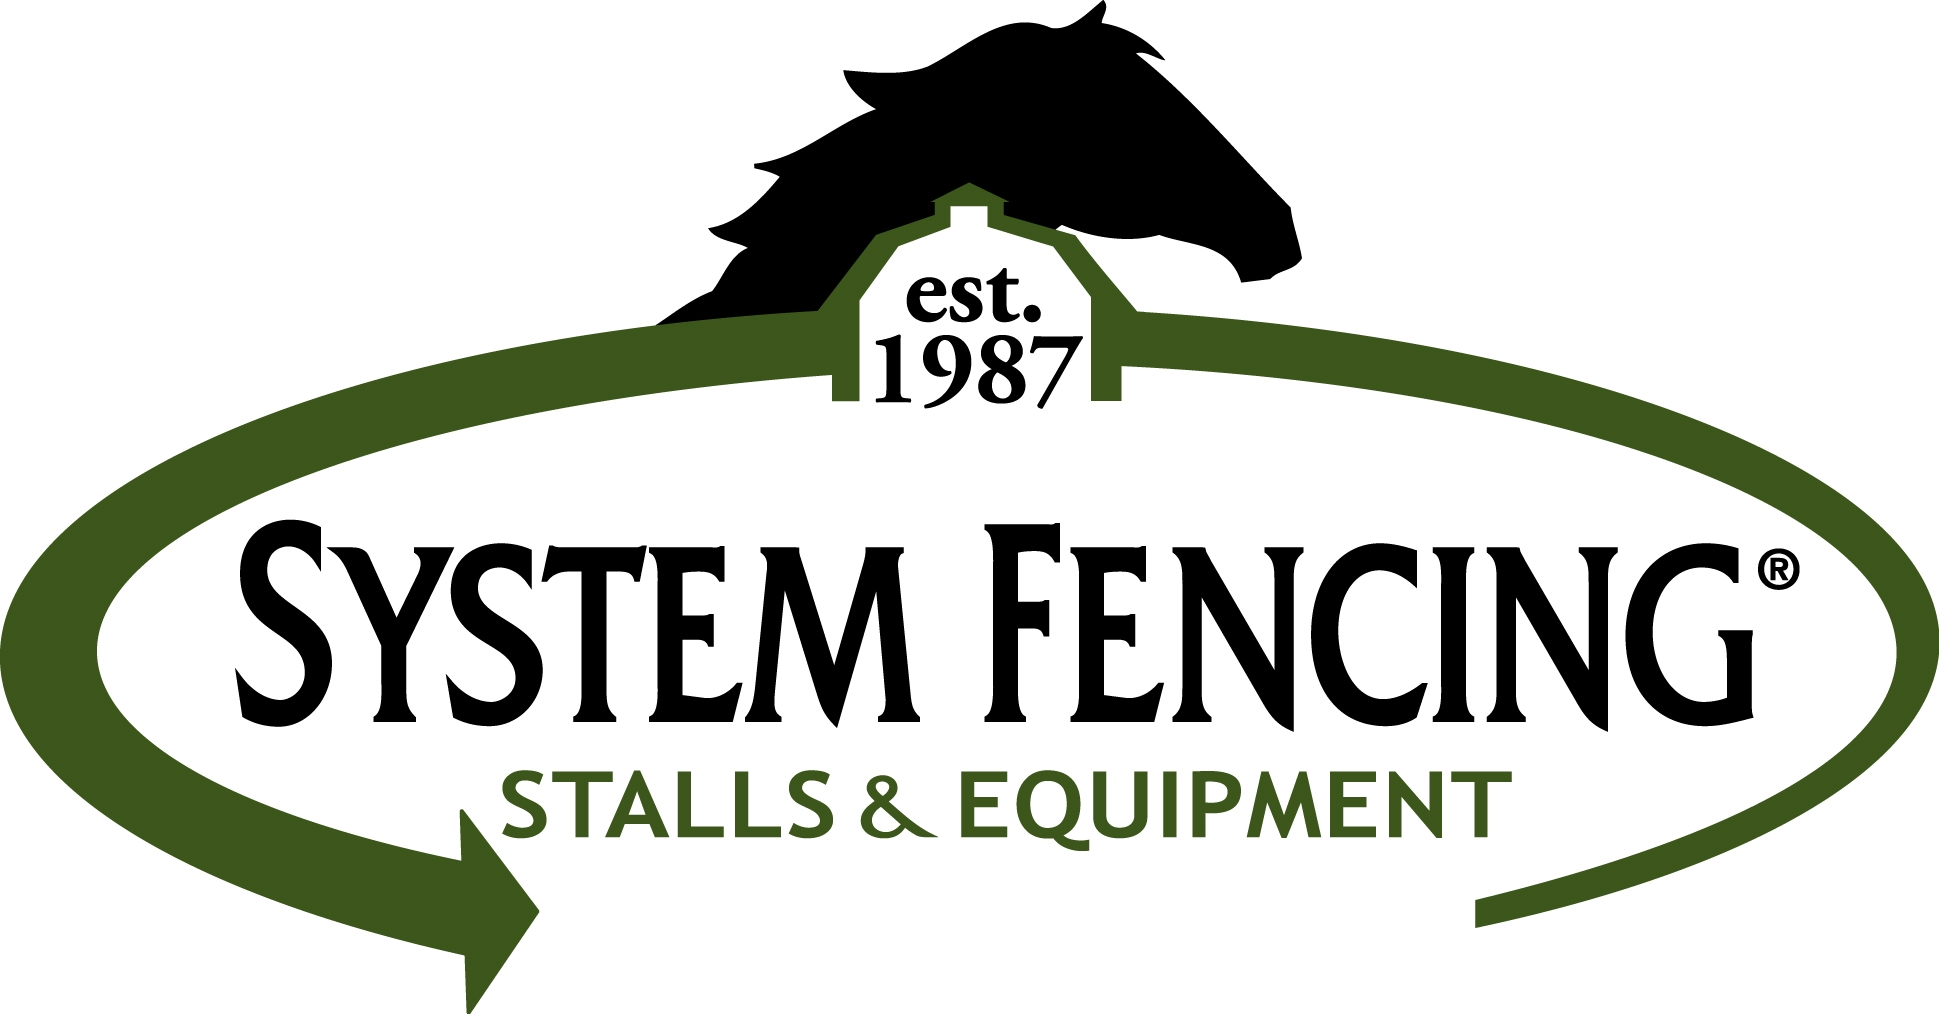 System Fencing Stall and Equipment logo